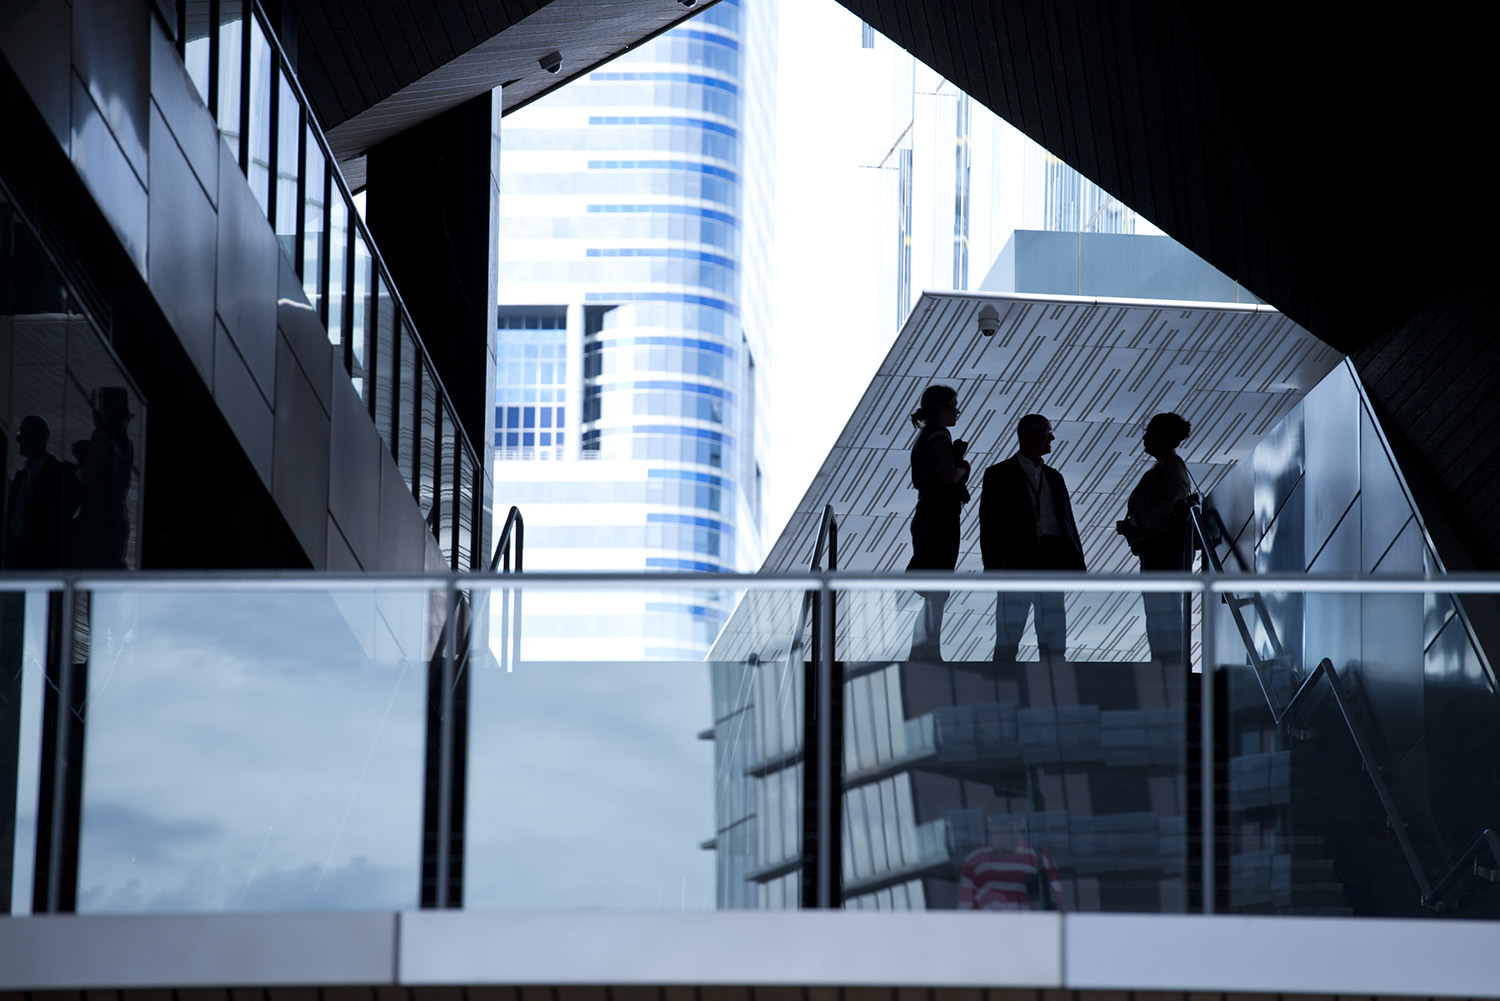 image of AARONTAIT COPYRIGHTED 2014 177 CORPORATE BUSINESS EXECUTIVES POWER COMMERCE DOCUMENTARY REPORTAGE URBAN CBD SILHOUETTE